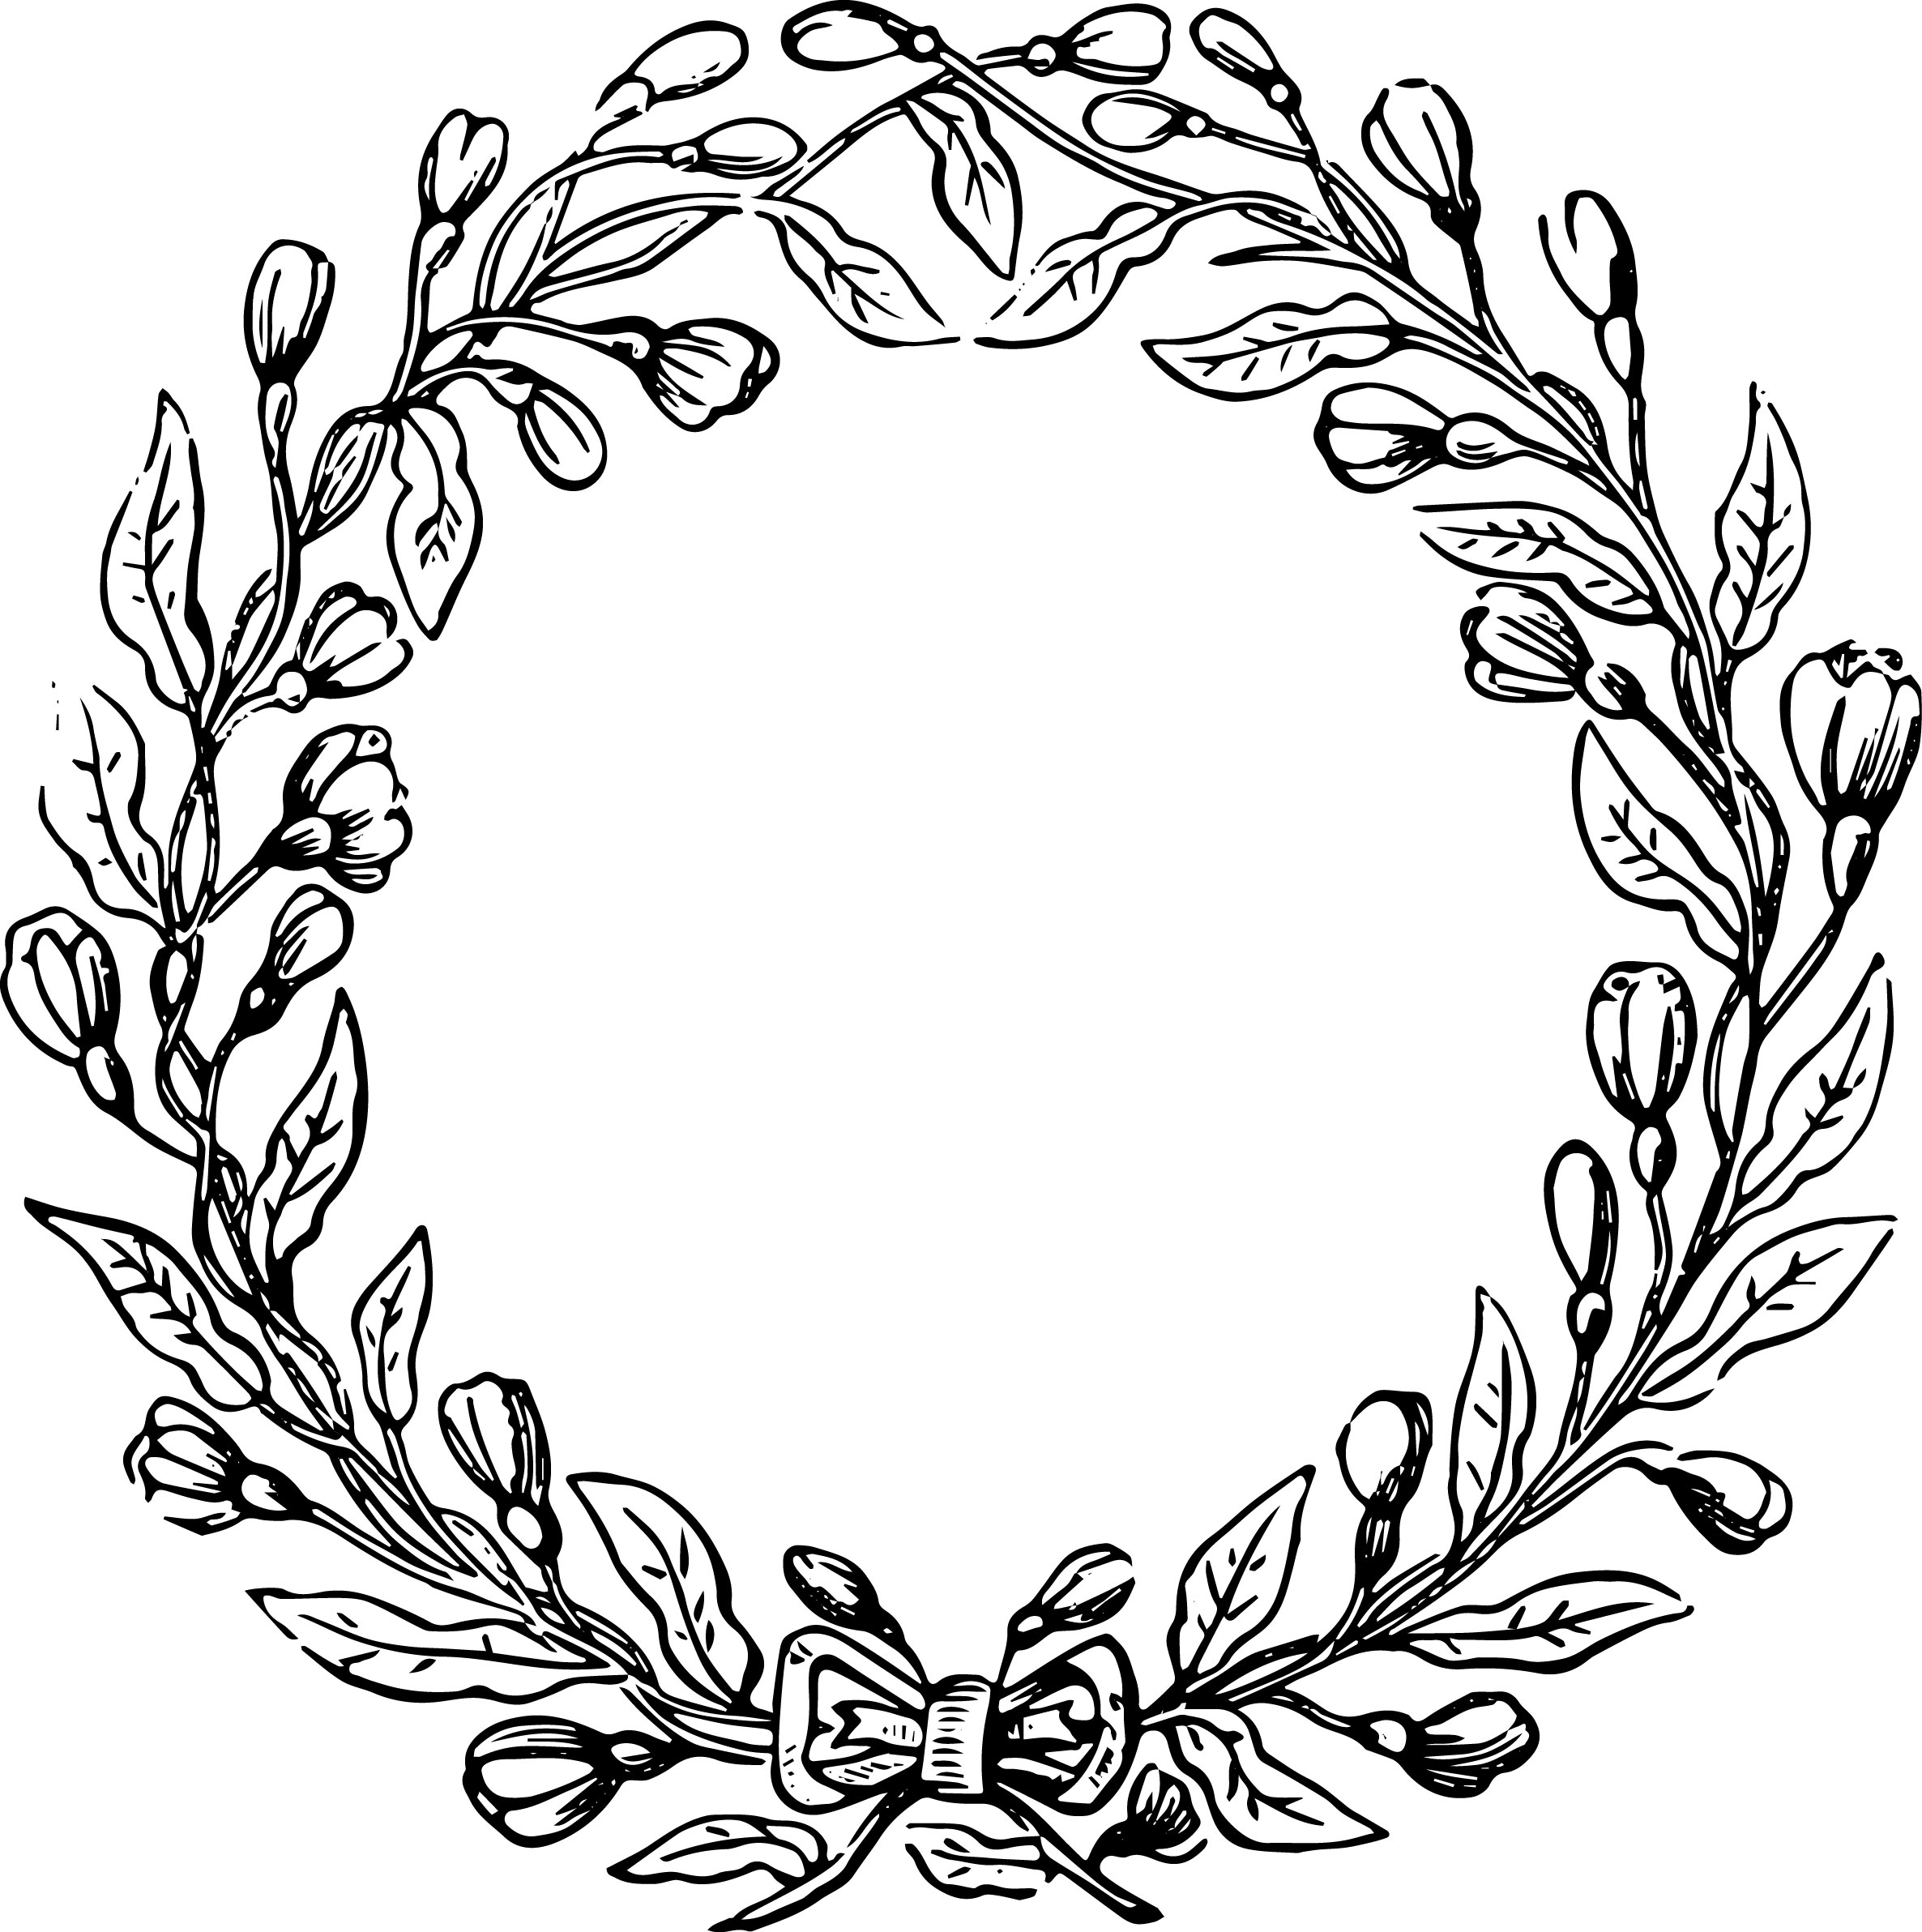 laurel wreath drawing at getdrawings com free for personal use rh getdrawings com  wreath clip art black and white free